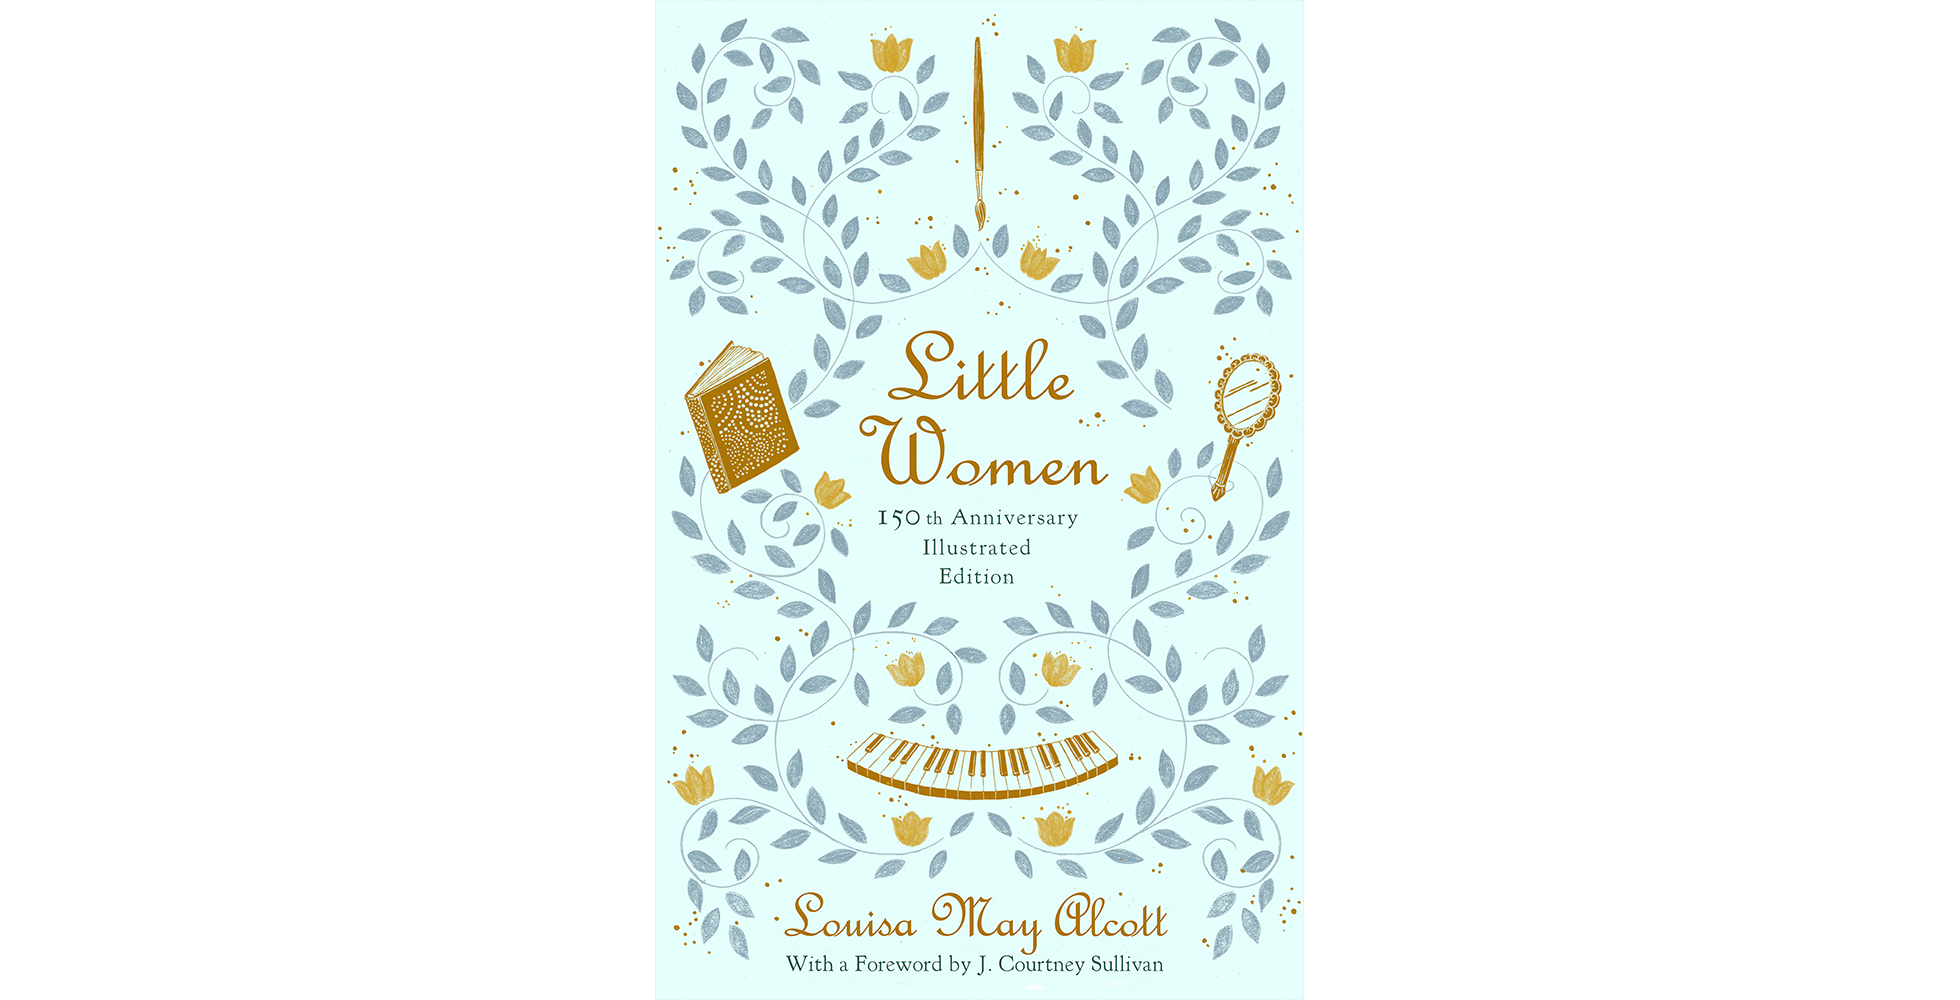 """book cover for """"Little Women"""" illustrated by Shreya Gupta. light blue background with a leaf decal and illustrations of piano keys, a book, a hand mirror and a paintbrush"""